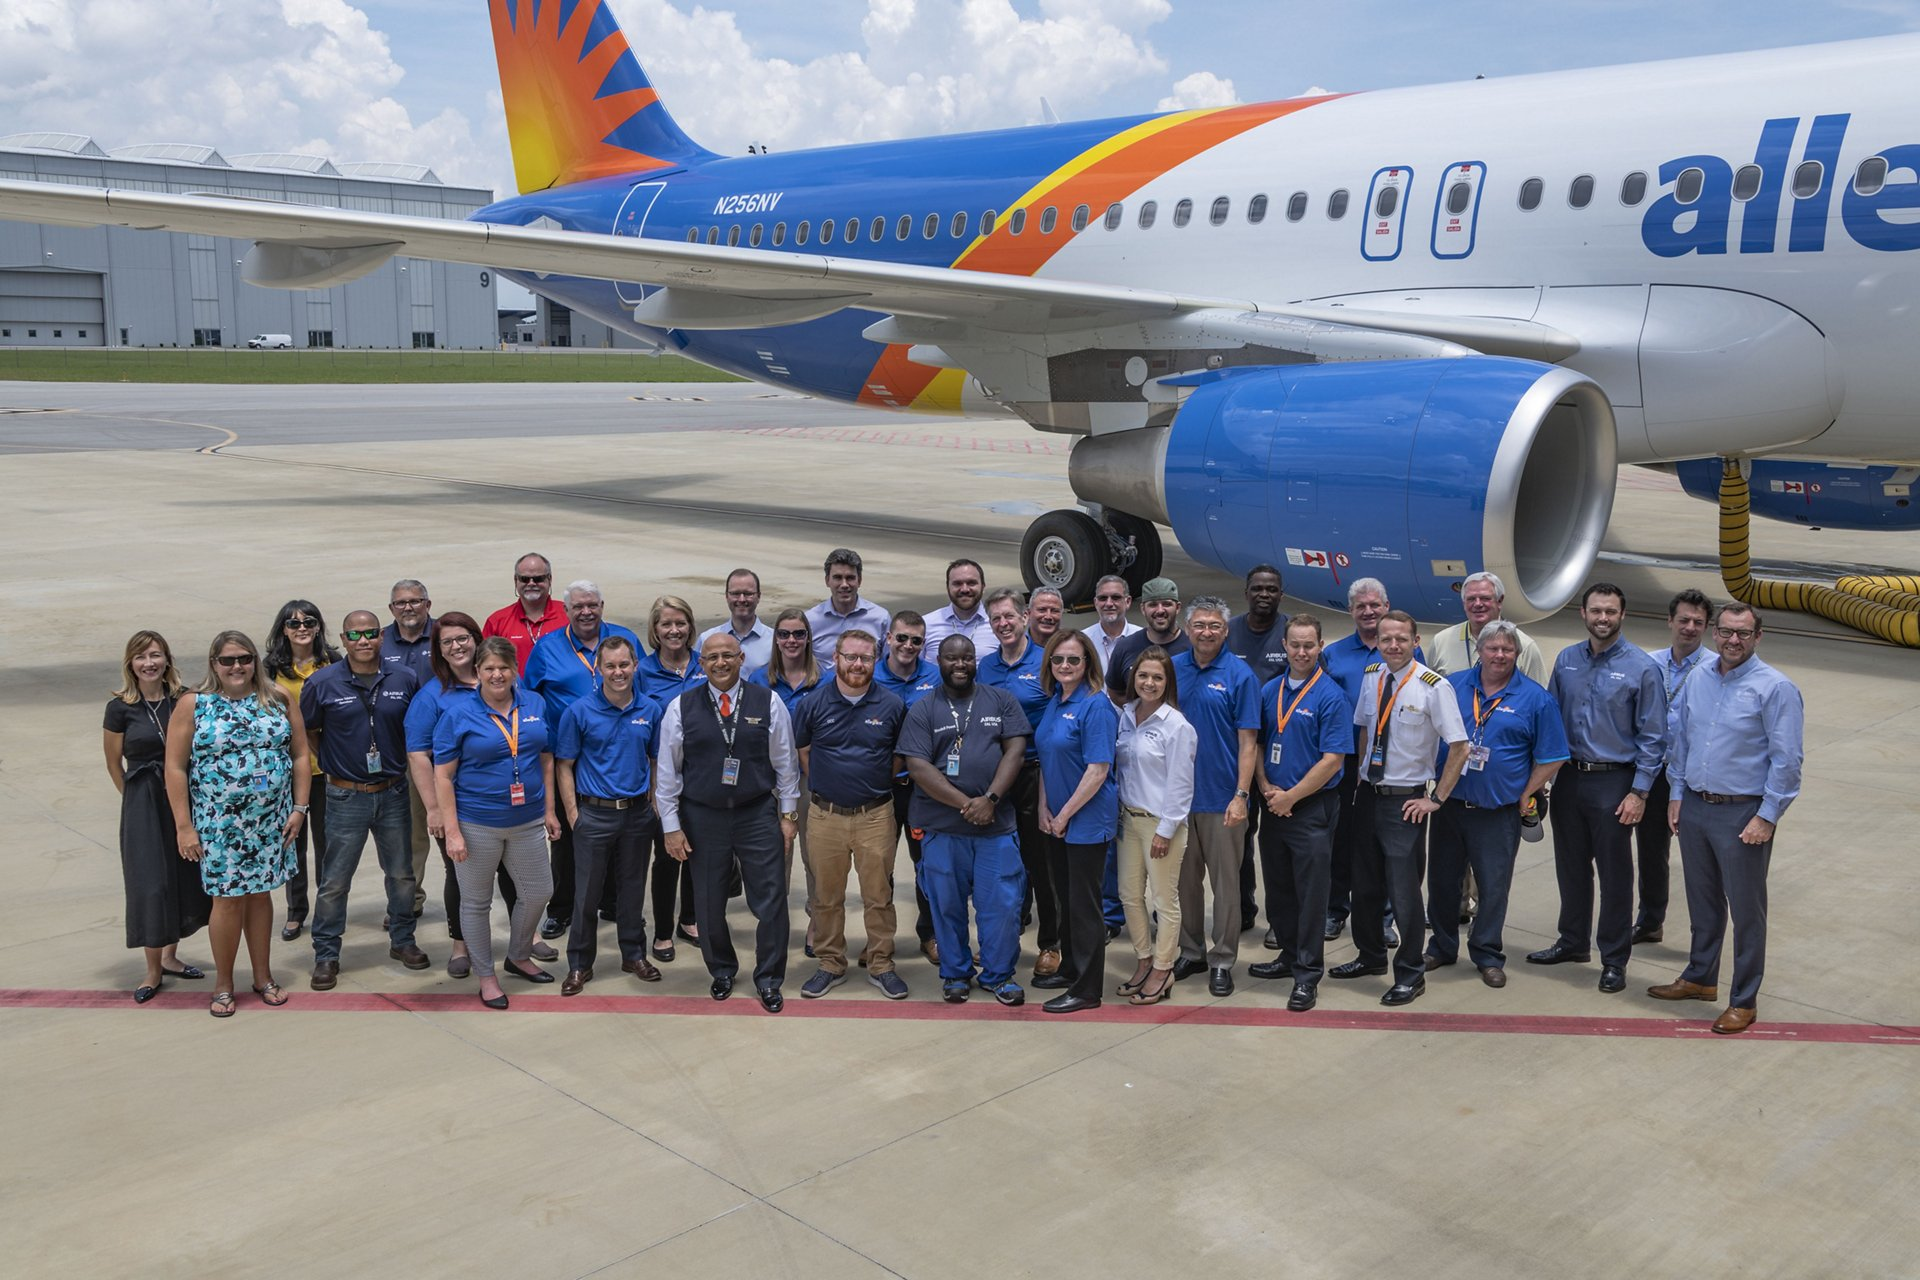 Celebrating the delivery of Airbus' first U.S.-produced A320 jetliner for Allegiant Air were executives from Airbus and Allegiant Air, along with a team of Allegiant employees and representatives of the more than 380 Airbus employees at the Airbus U.S. Manufacturing Facility in Mobile, Alabama